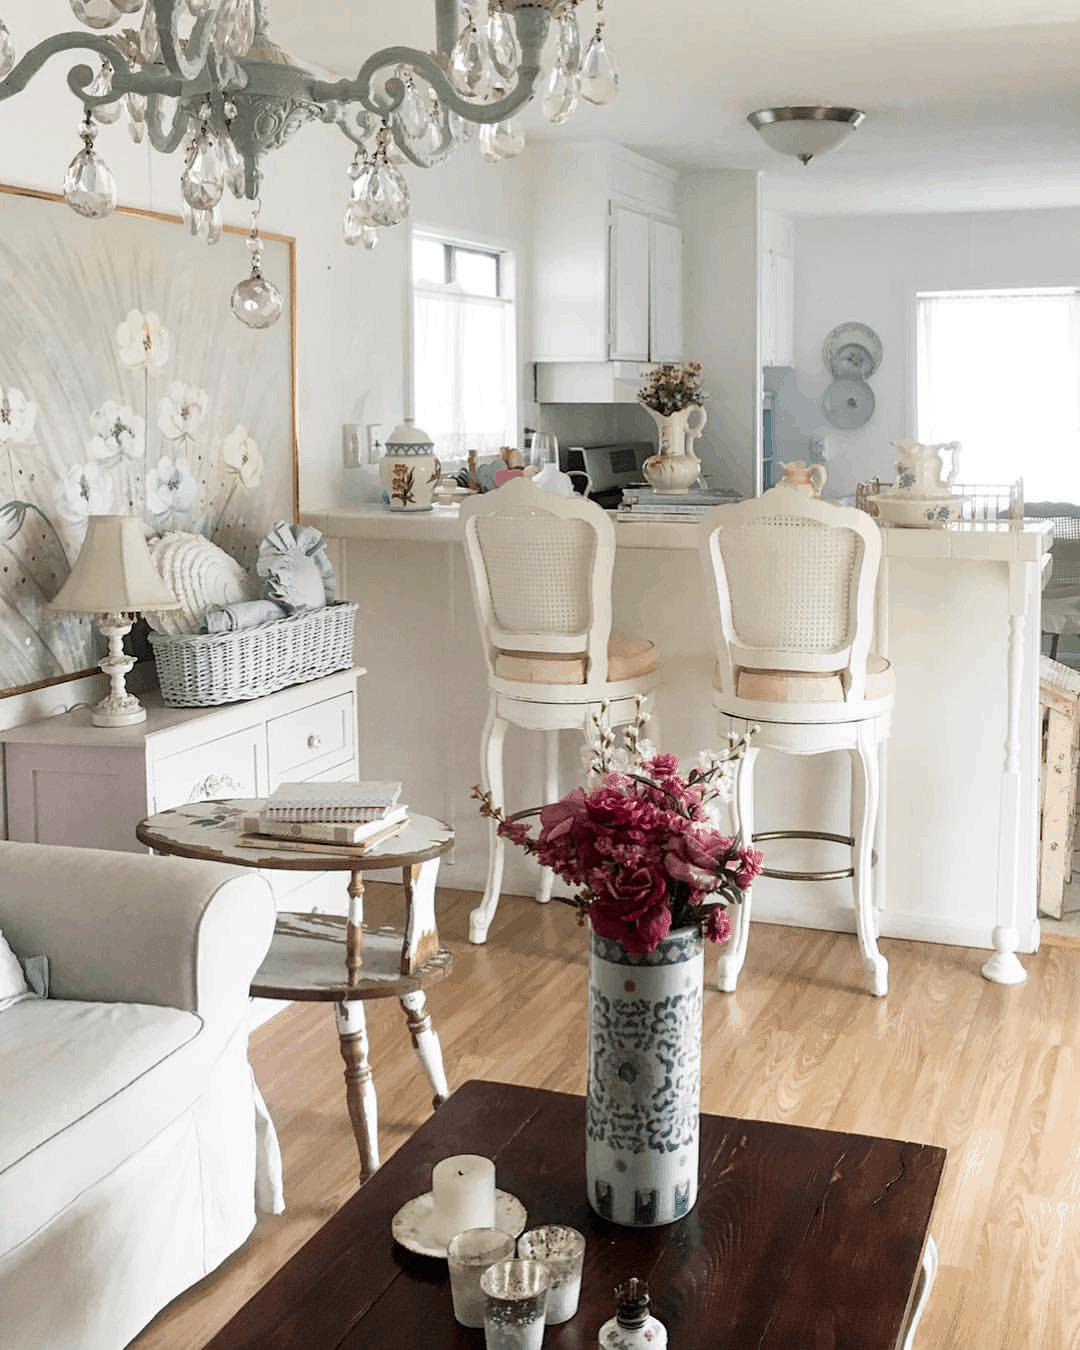 kitchen counter and living room in shabby chic